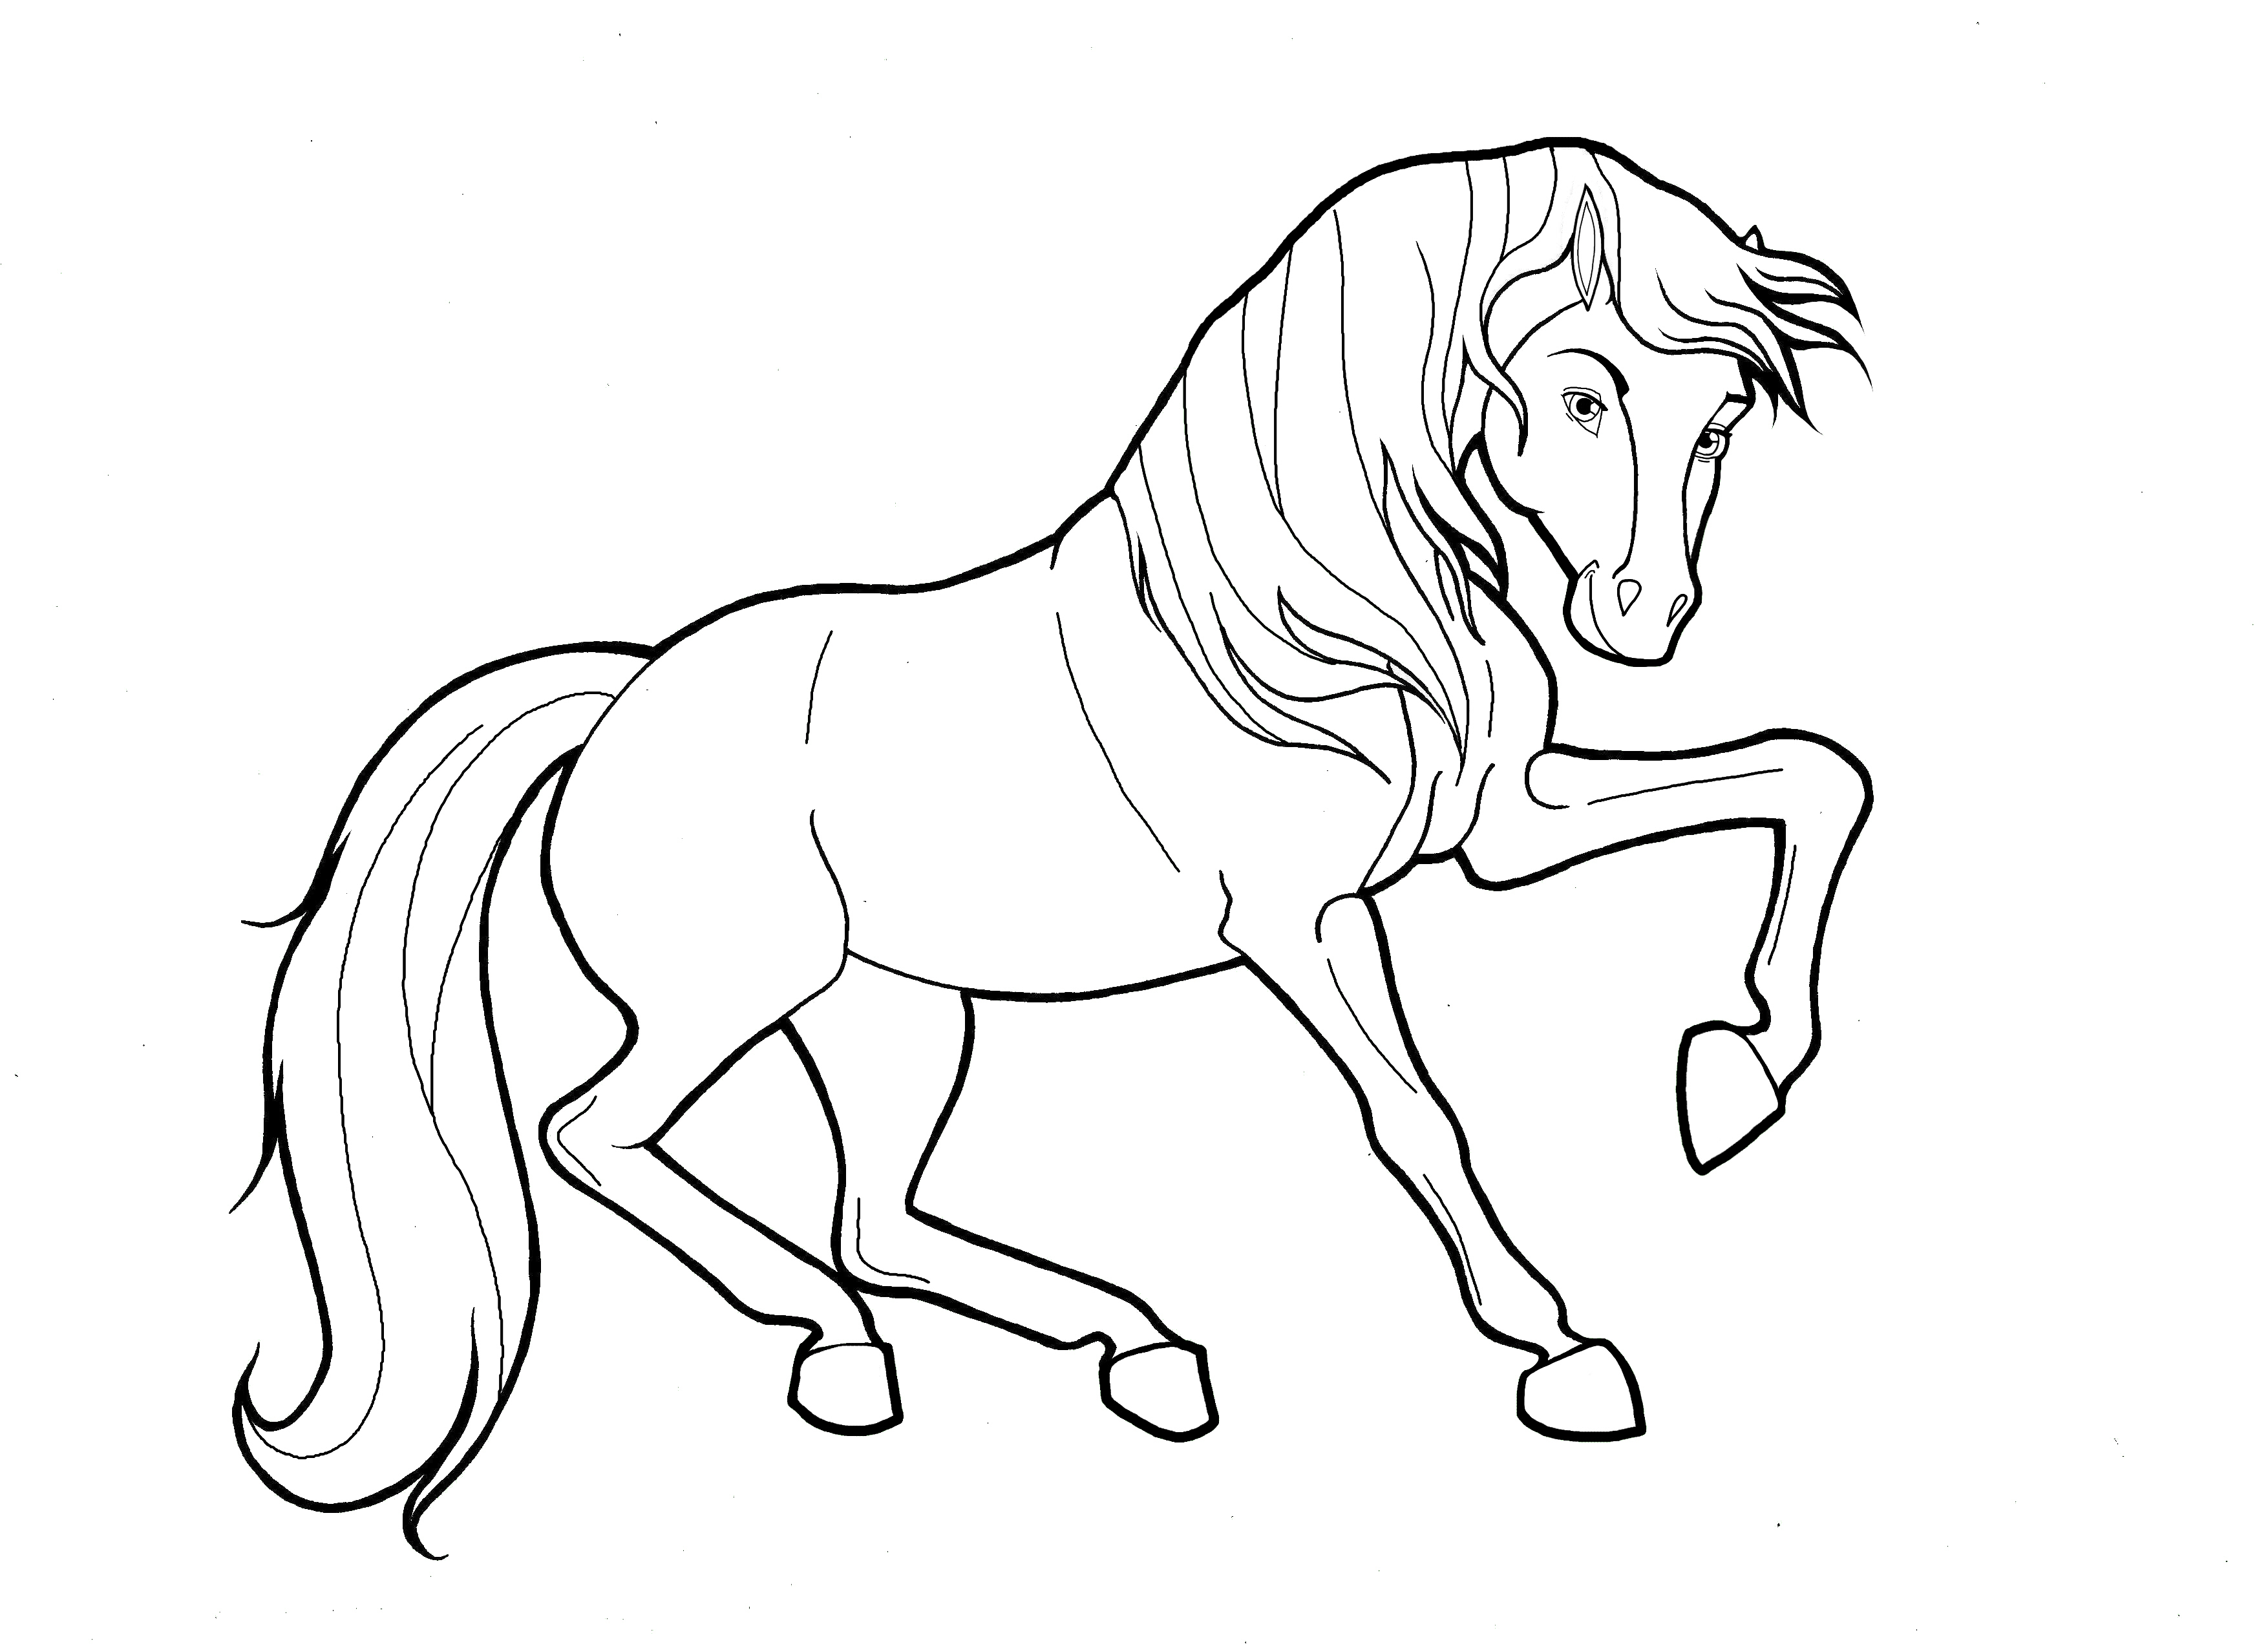 coloring picture of horse palomino horse coloring pages download and print for free horse picture coloring of